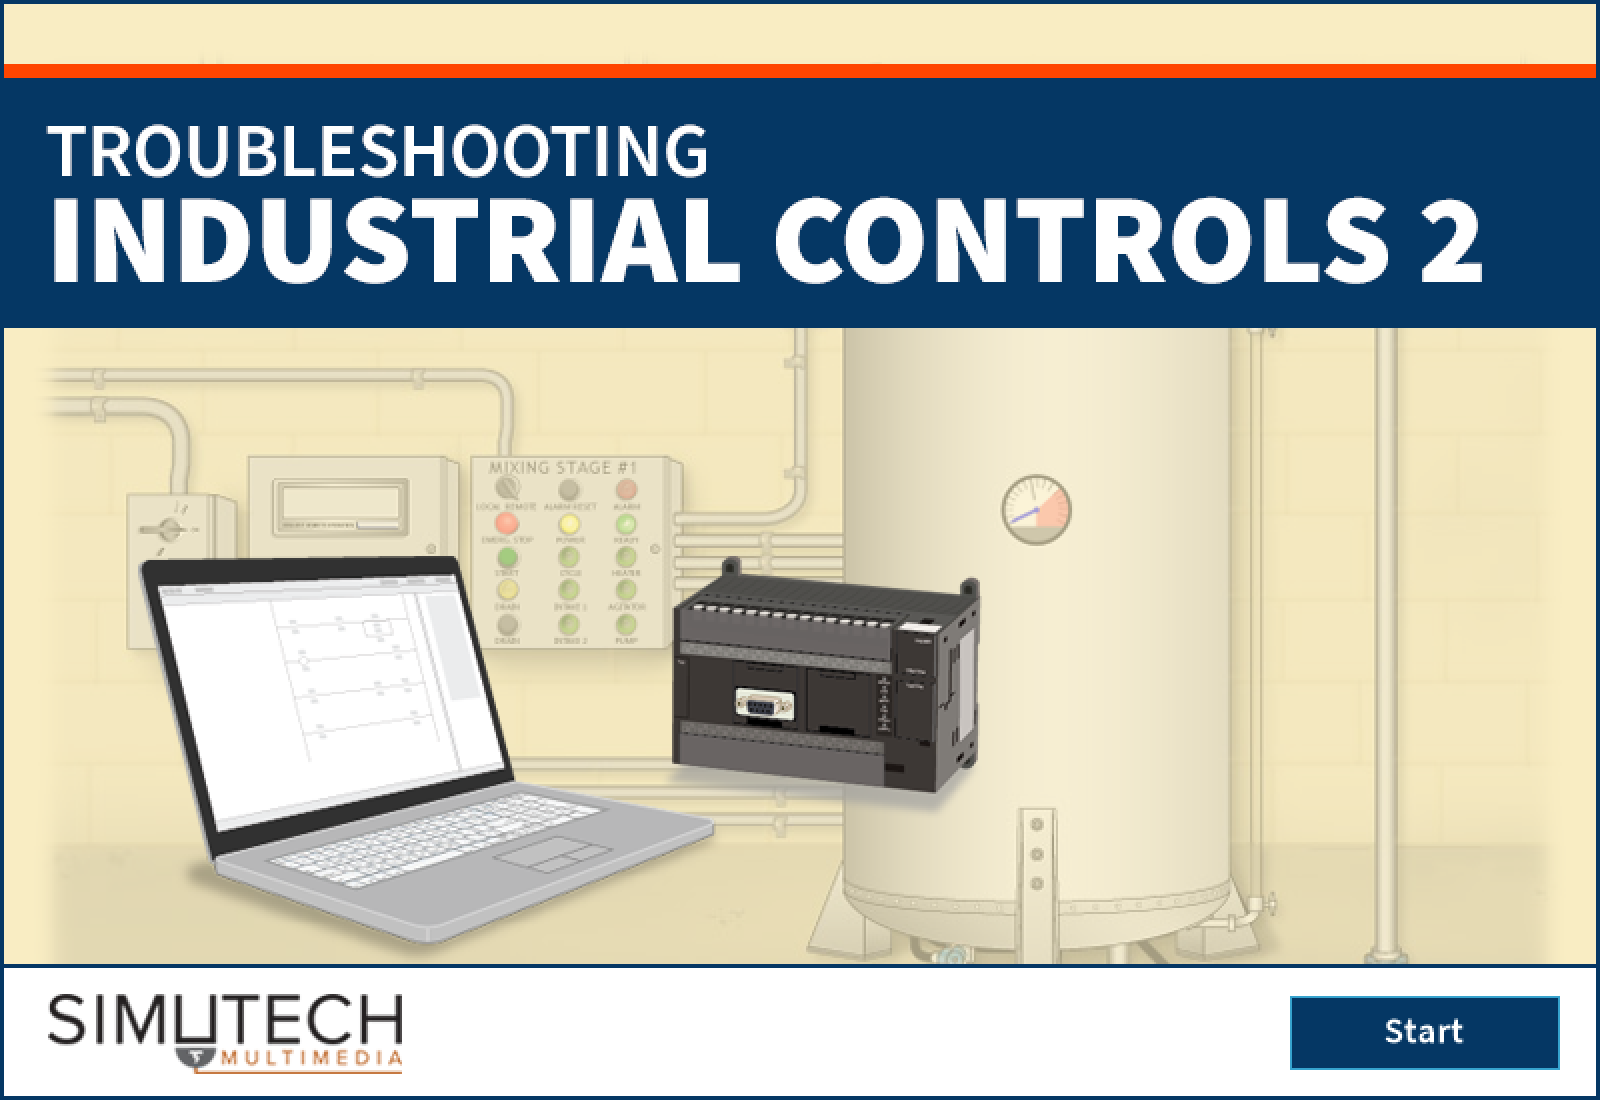 Troubleshooting Industrial Controls 2